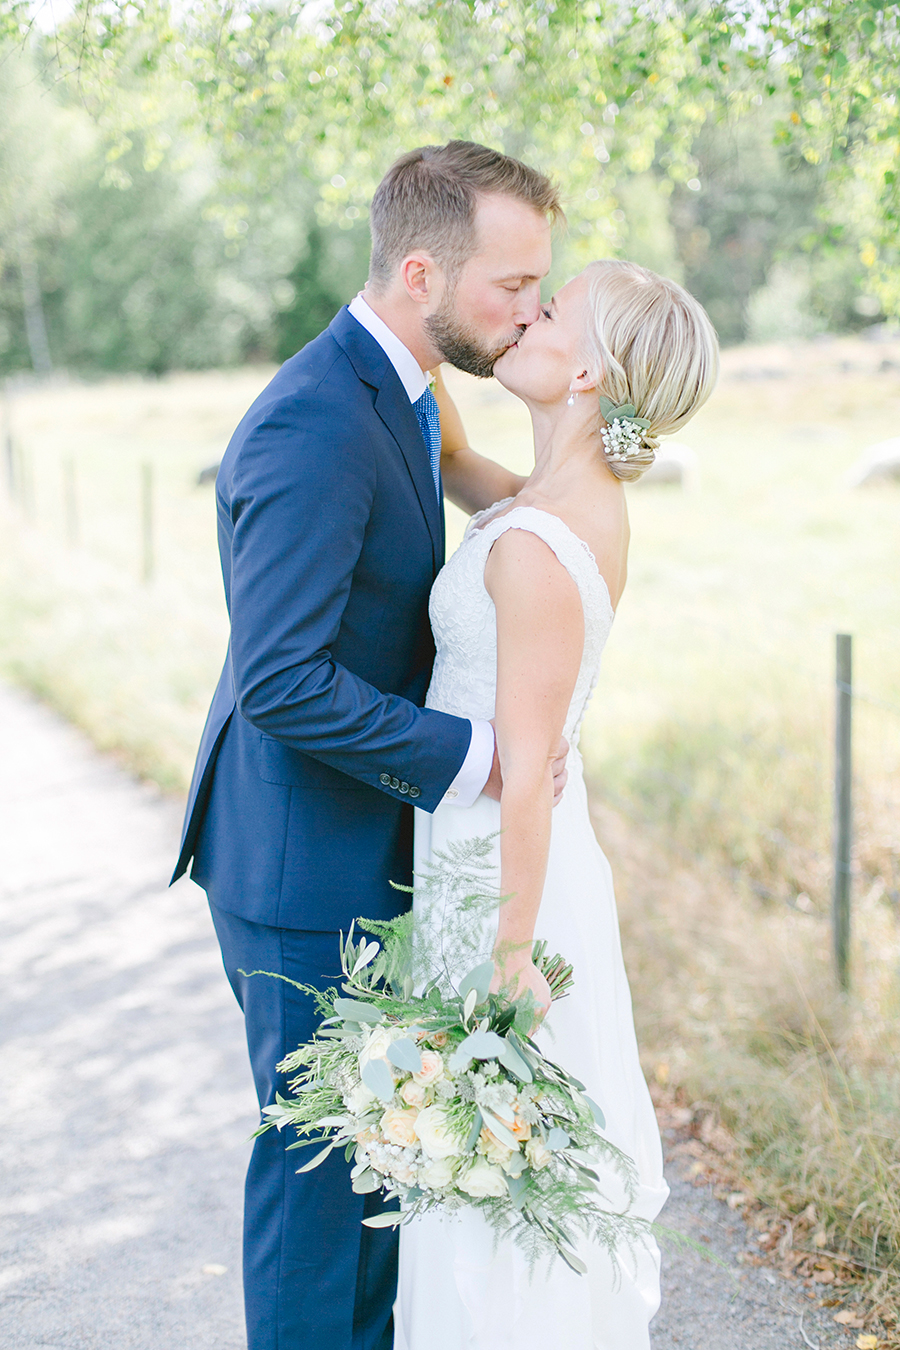 rebeccahansson.com-wedding-Elin-and-Peder-august-13th-2016-(137).jpg